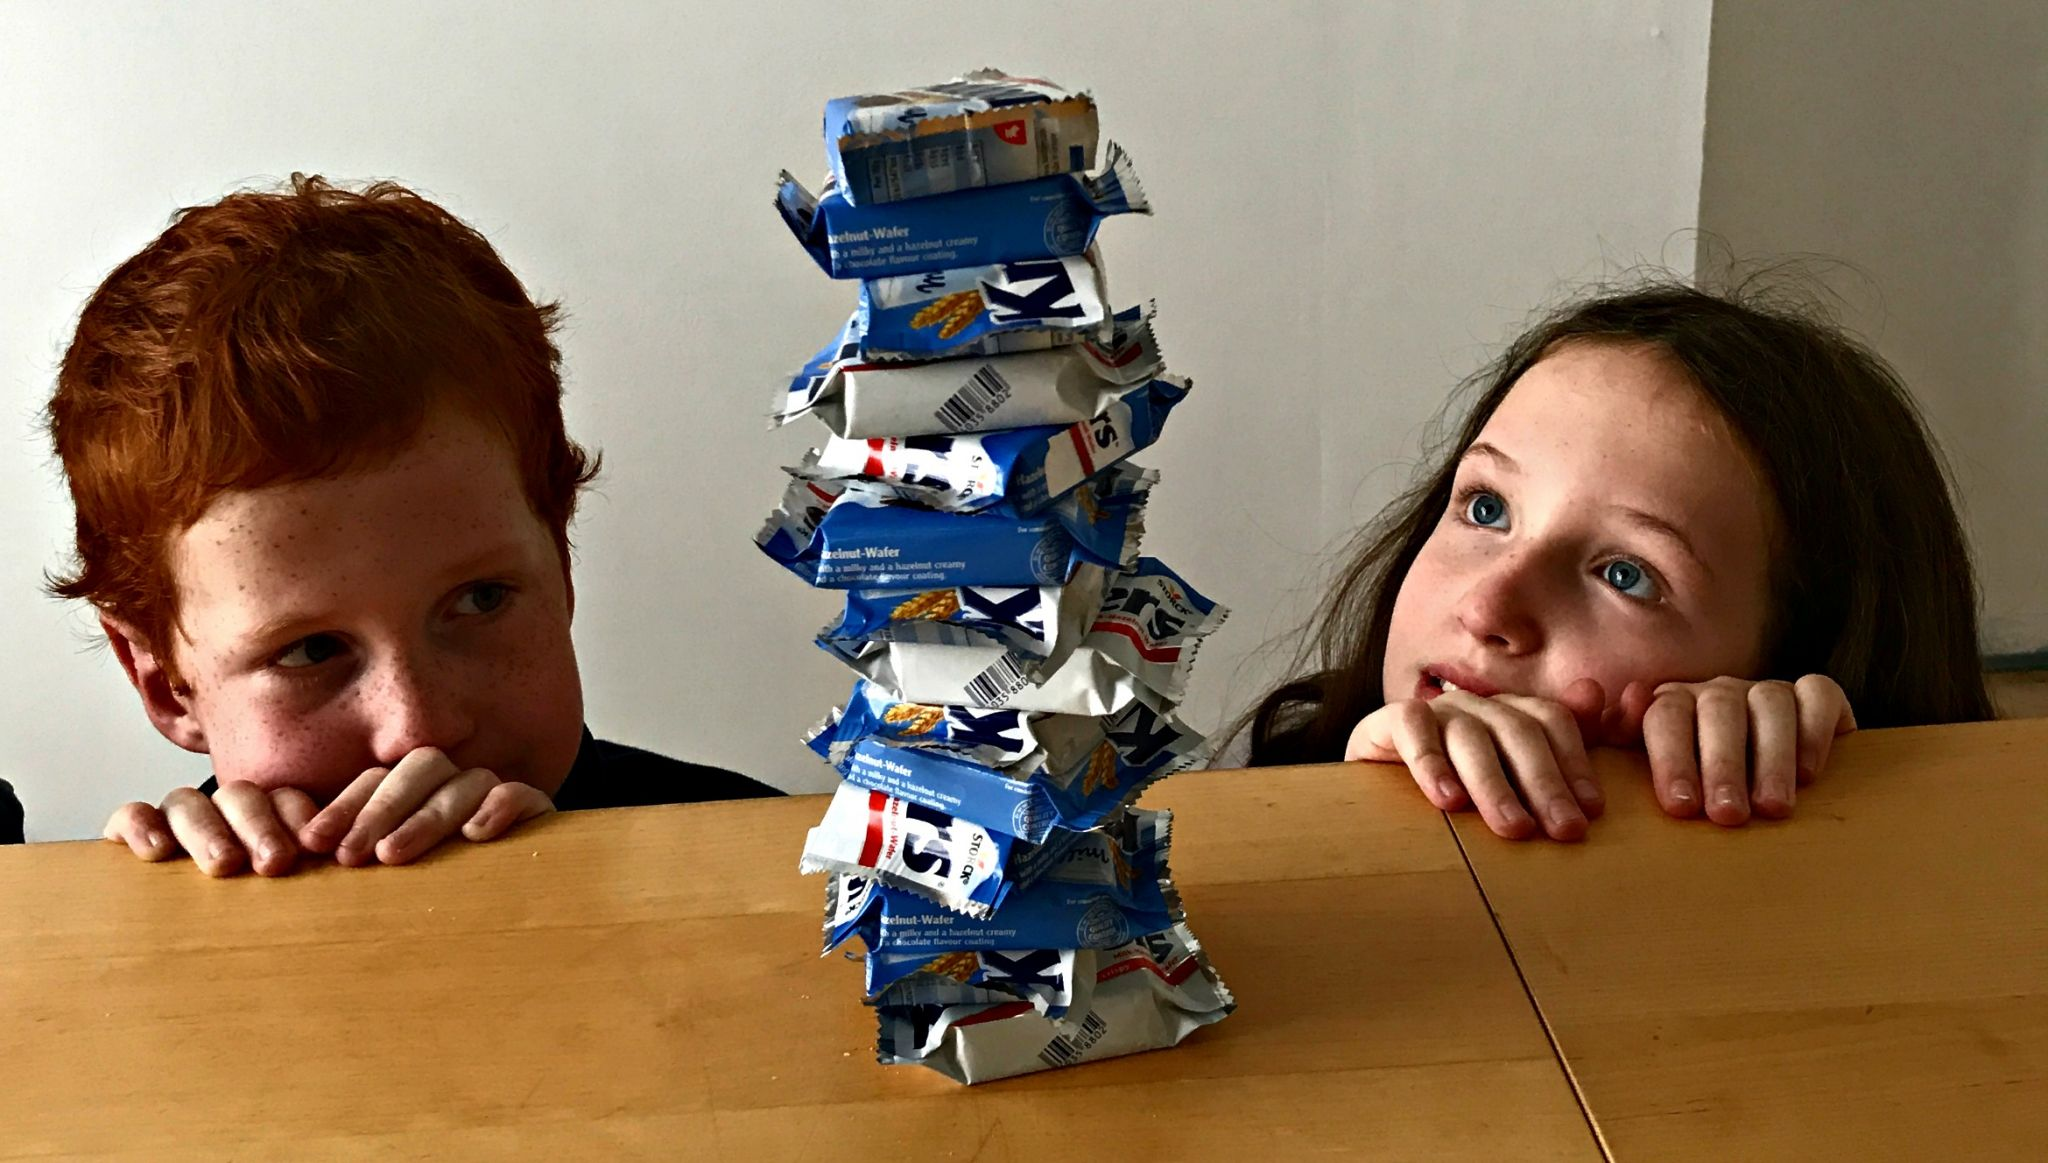 Caitlin & Ieuan & The Leaning Tower of Knoppers